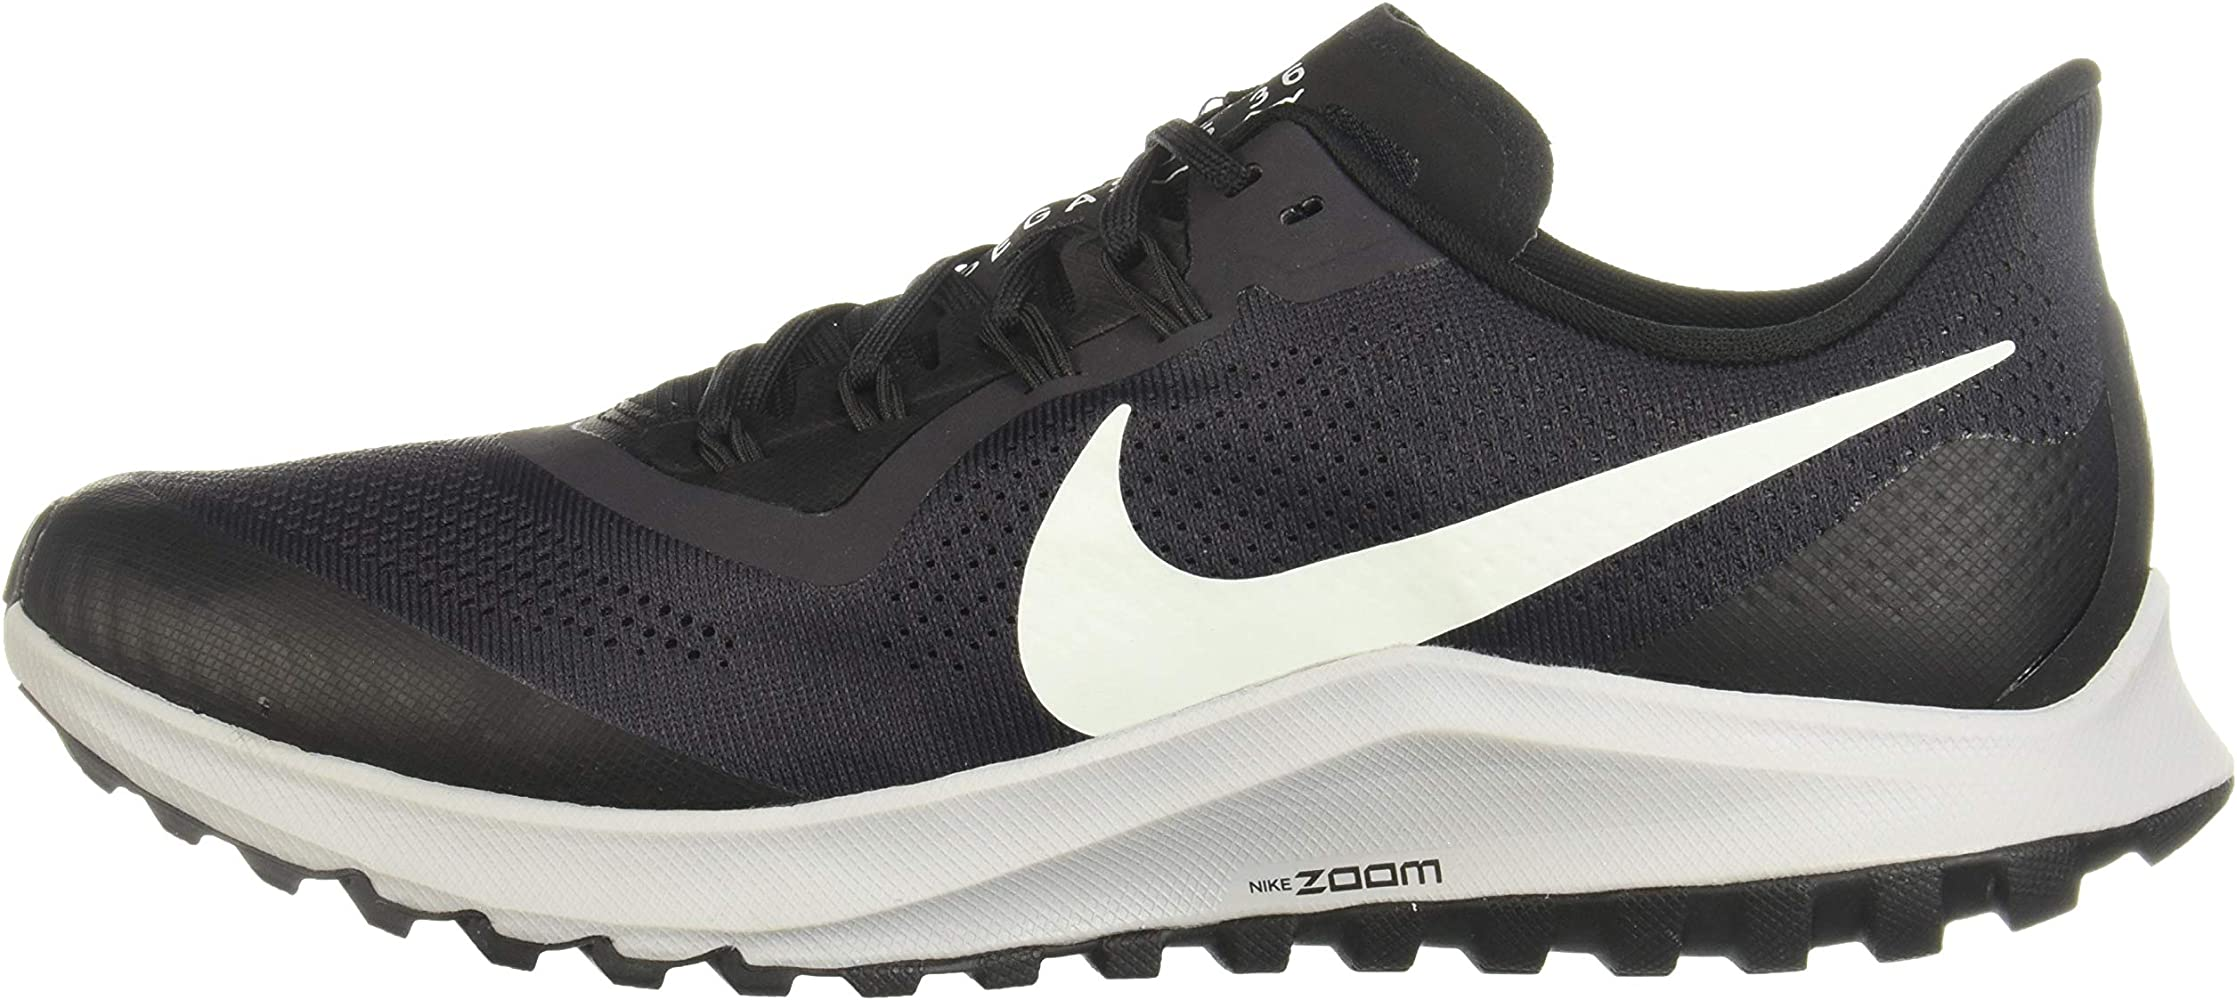 Nike Air Zoom Pegasus 36 Trail, Zapatillas Running para Hombre, Gris (Oil Grey/Barely Grey/Black/Wolf Grey 2), 38.5 EU: Amazon.es: Zapatos y complementos